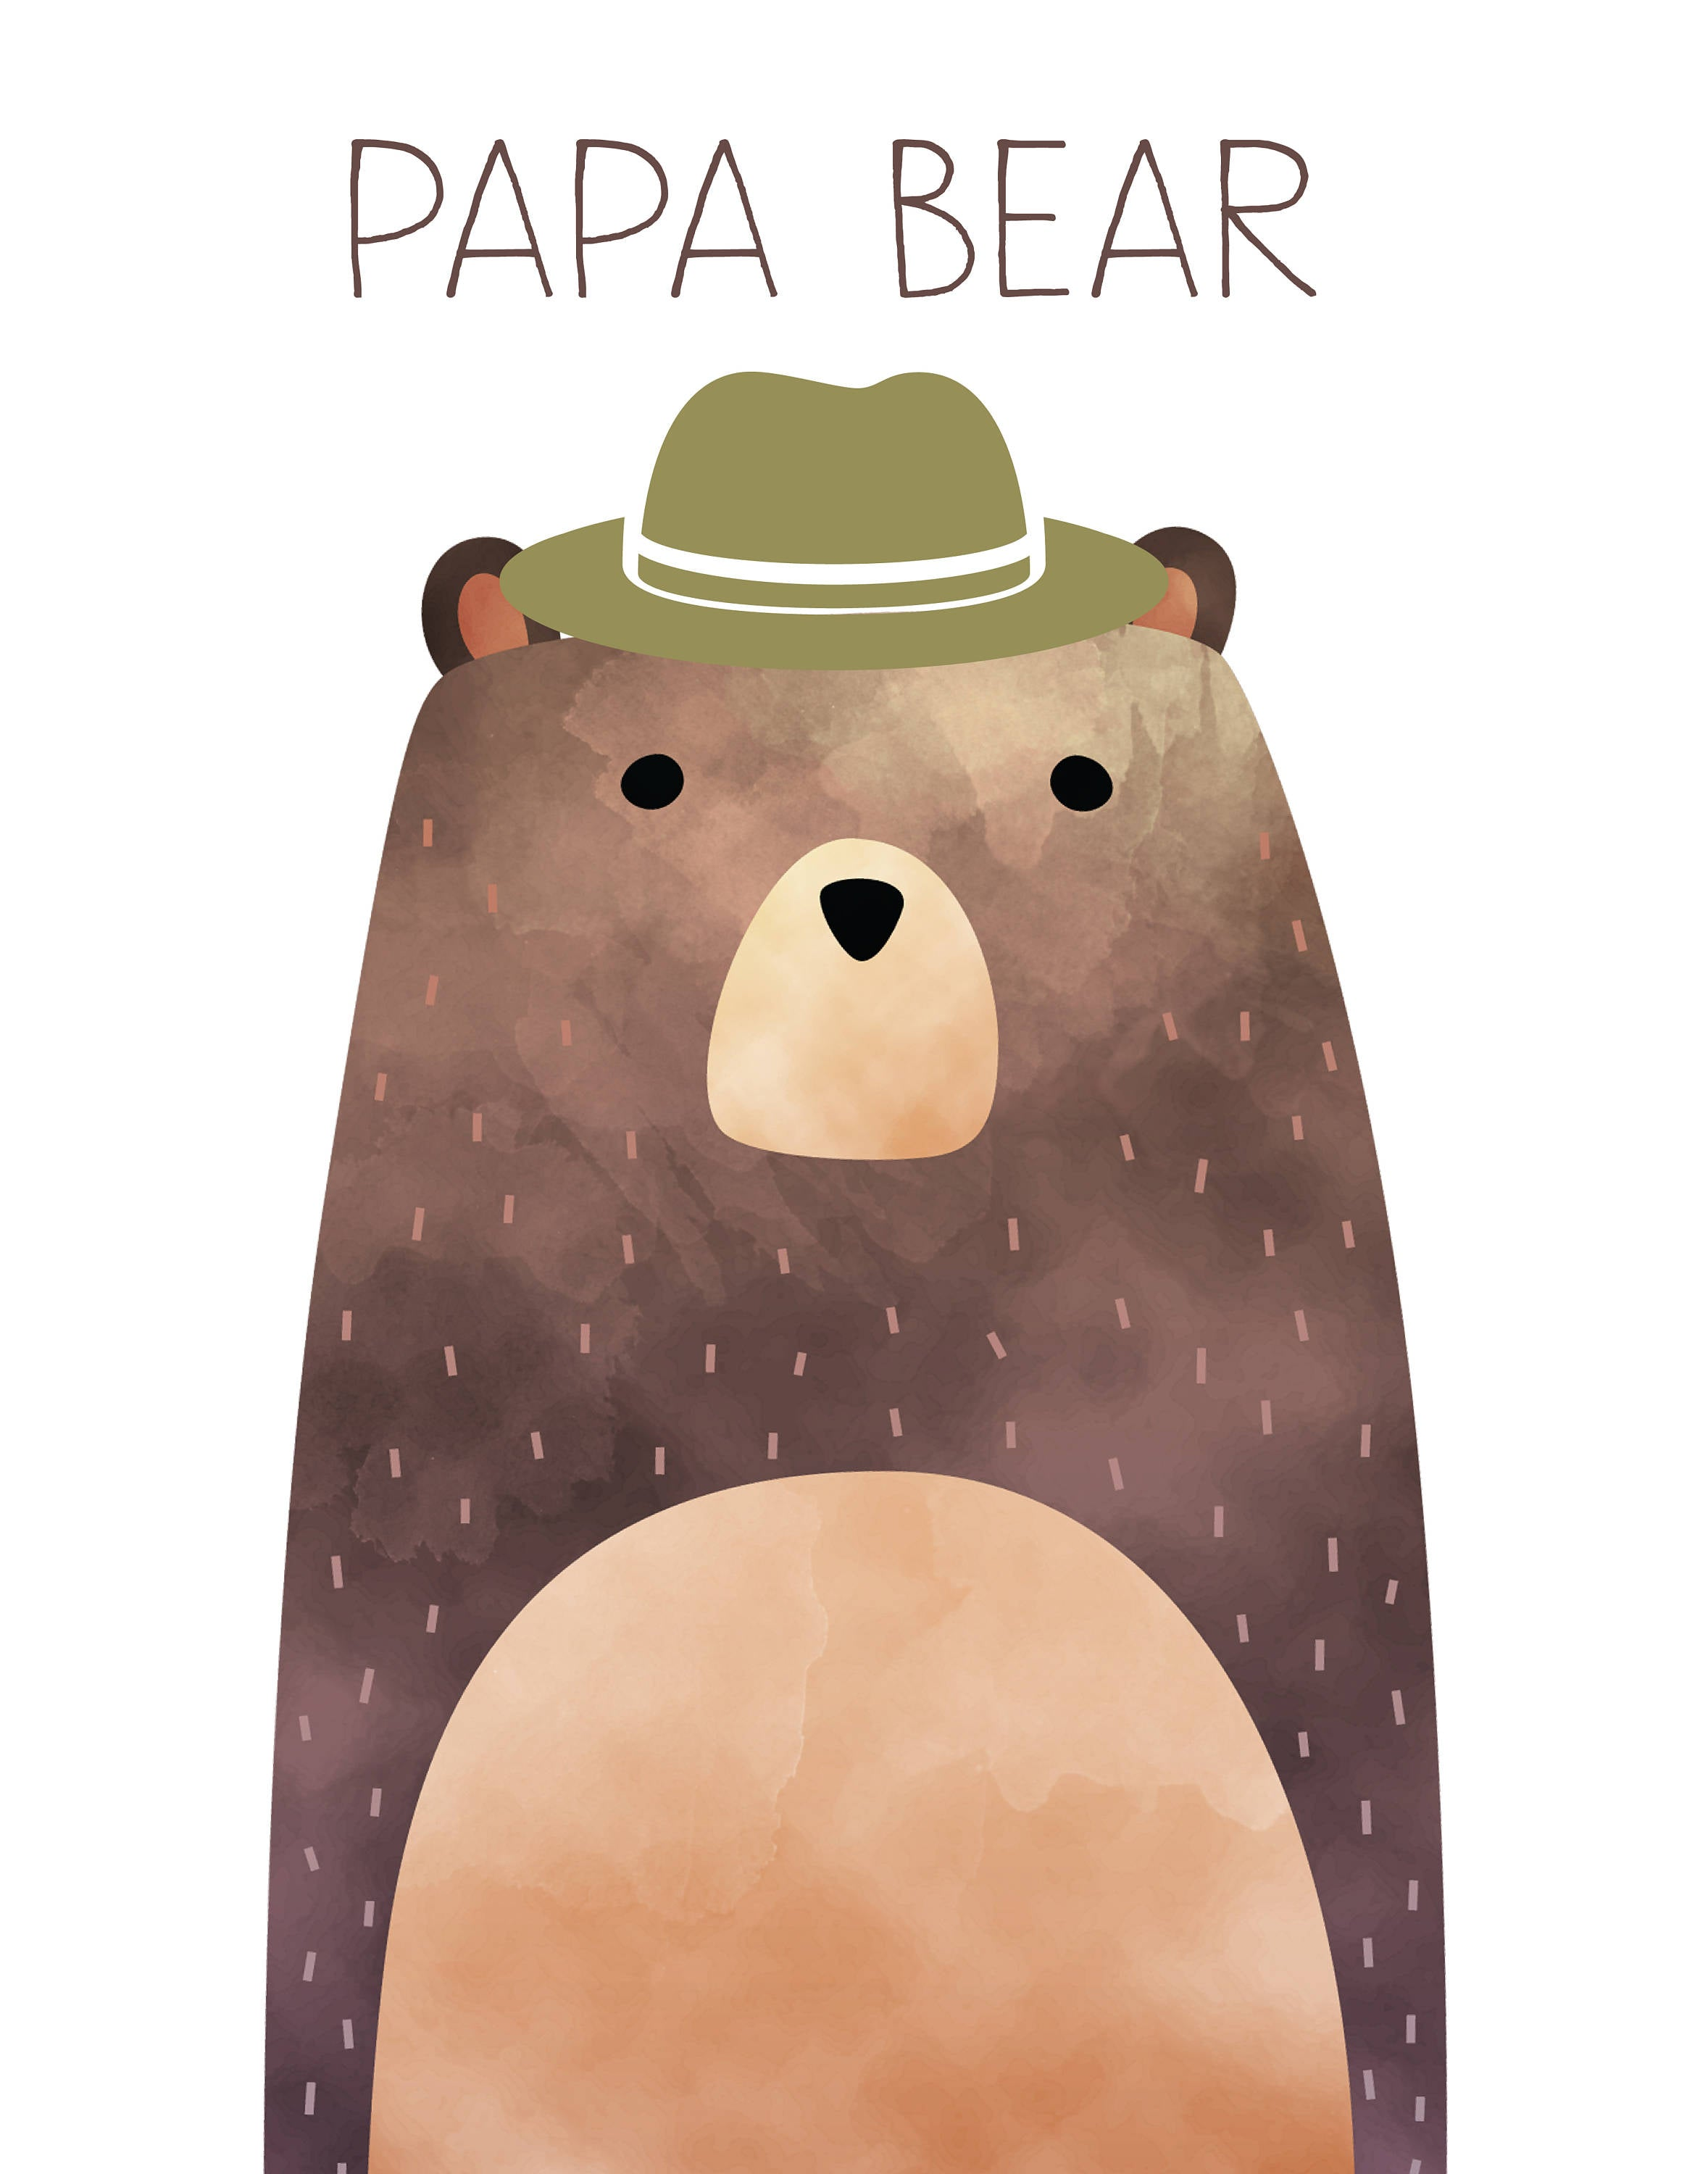 Goldilocks and Three Bears Printables, Nursery Printables, mama bear, papa bear, baby bear